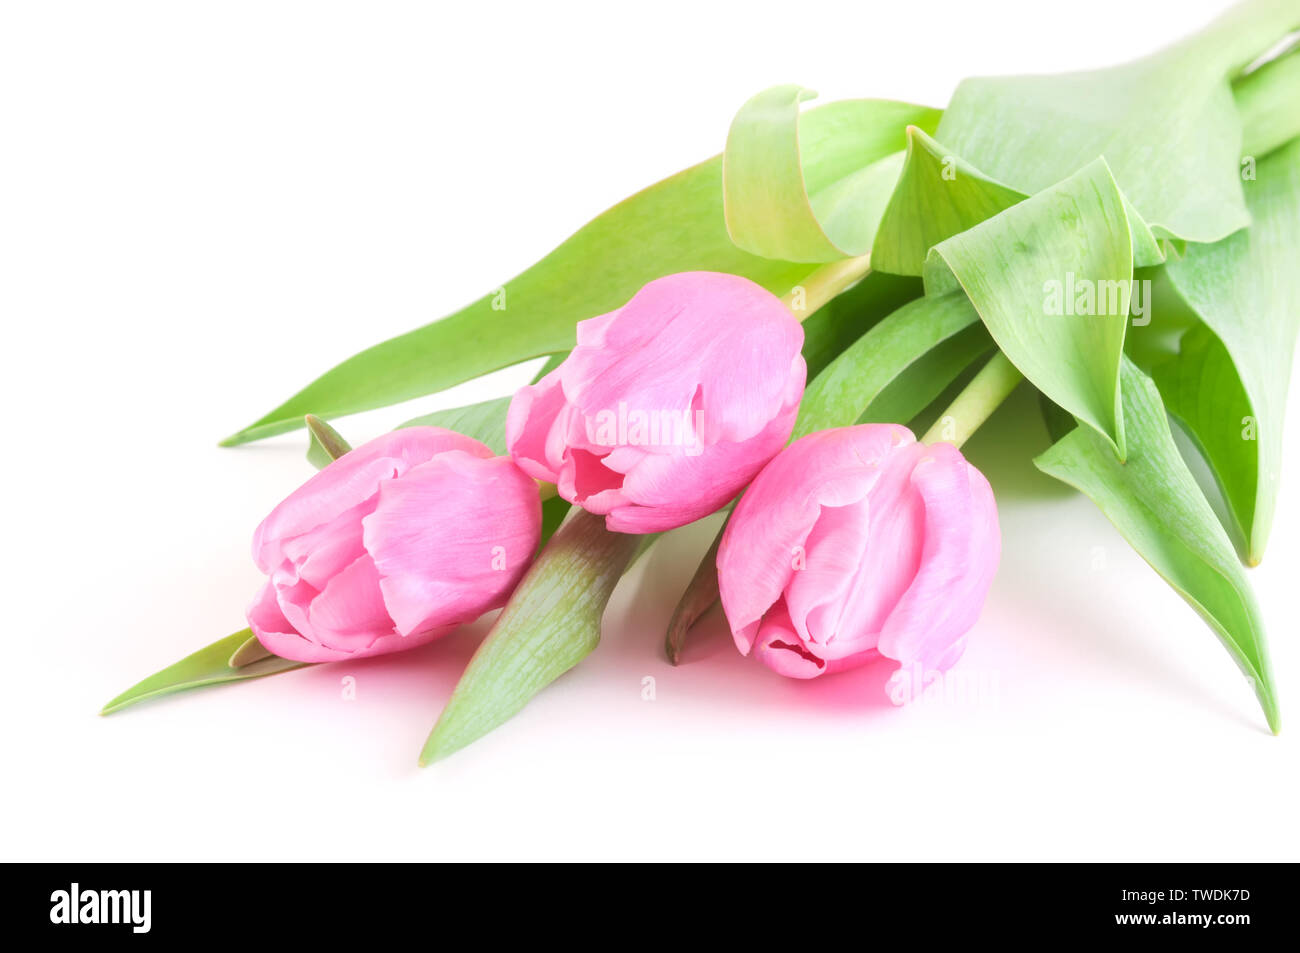 Pink tulips bouquet on white background - Stock Image